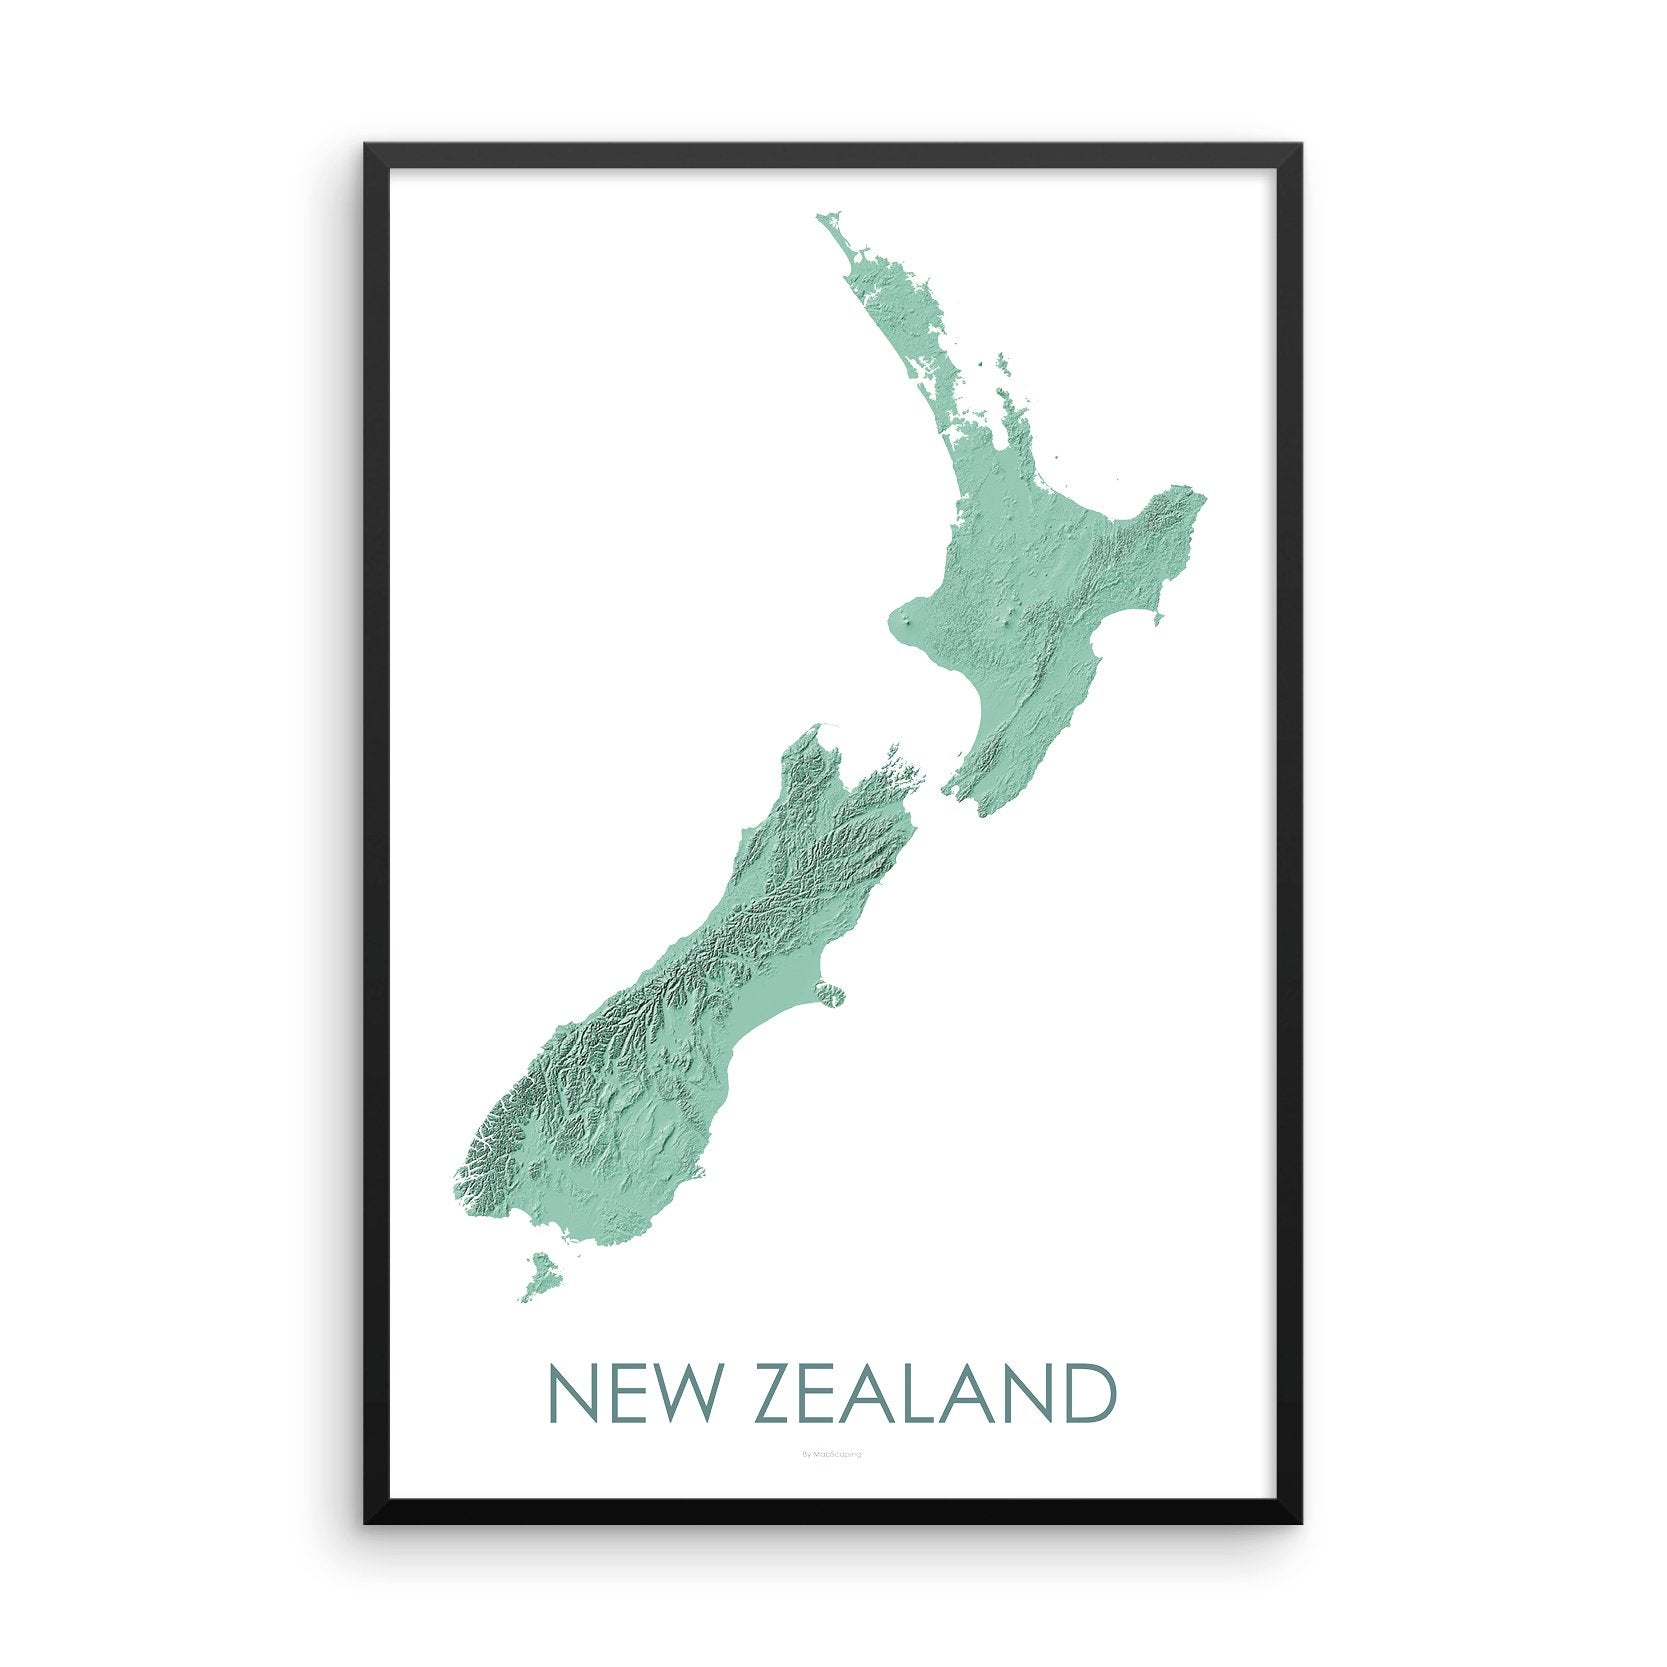 Framed light green poster map of New Zealand's North and South Islands, detailed map print showing the mountains of New Zealand's landscape.